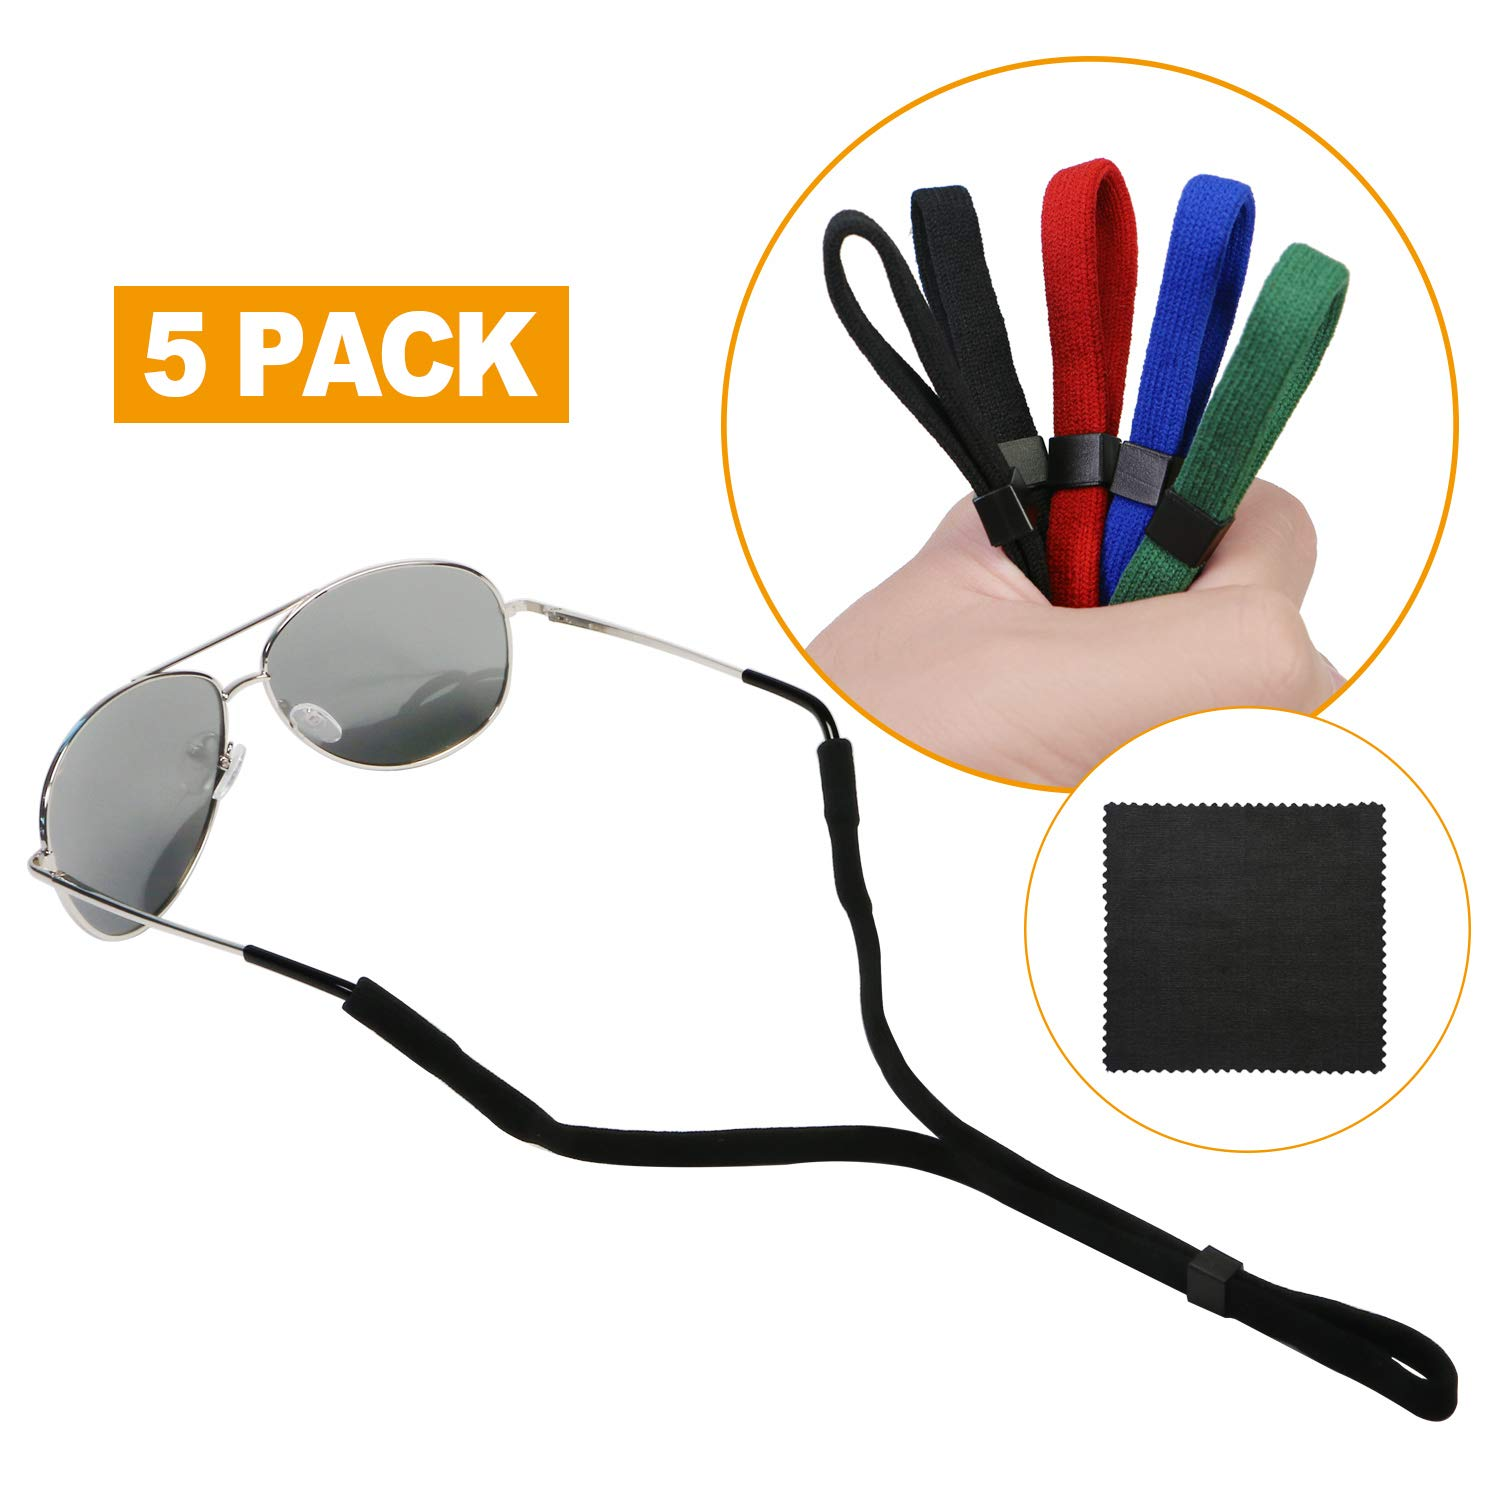 Aaskuu 5 Pack Glasses Straps, Float Eyeglasses and Sunglasses Adjustable Eyewear Retainer with Lanyards and Microfiber Cleaning Cloth by Aaskuu